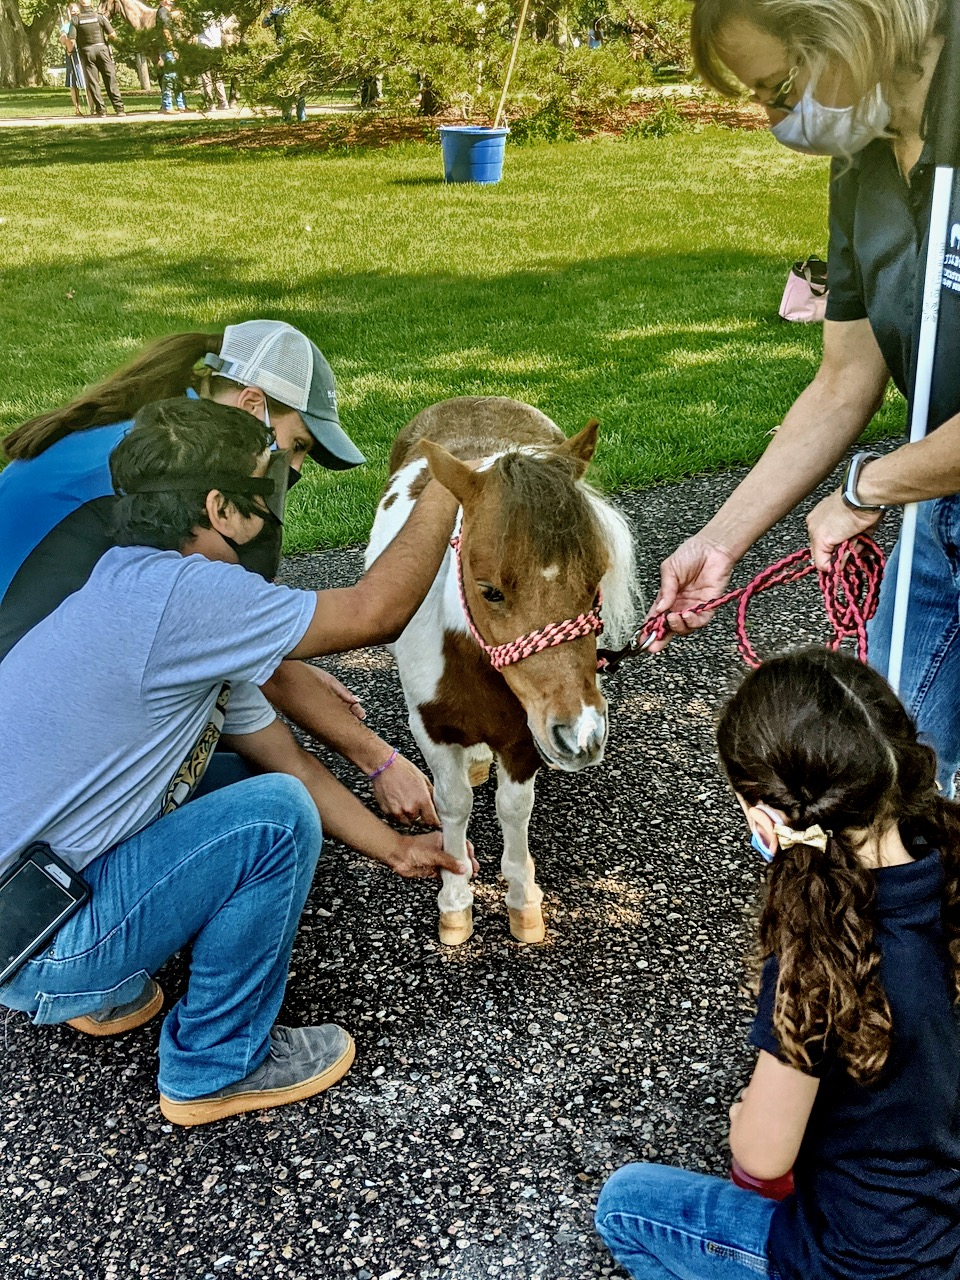 Will looks at Love Bug, a miniature horse.